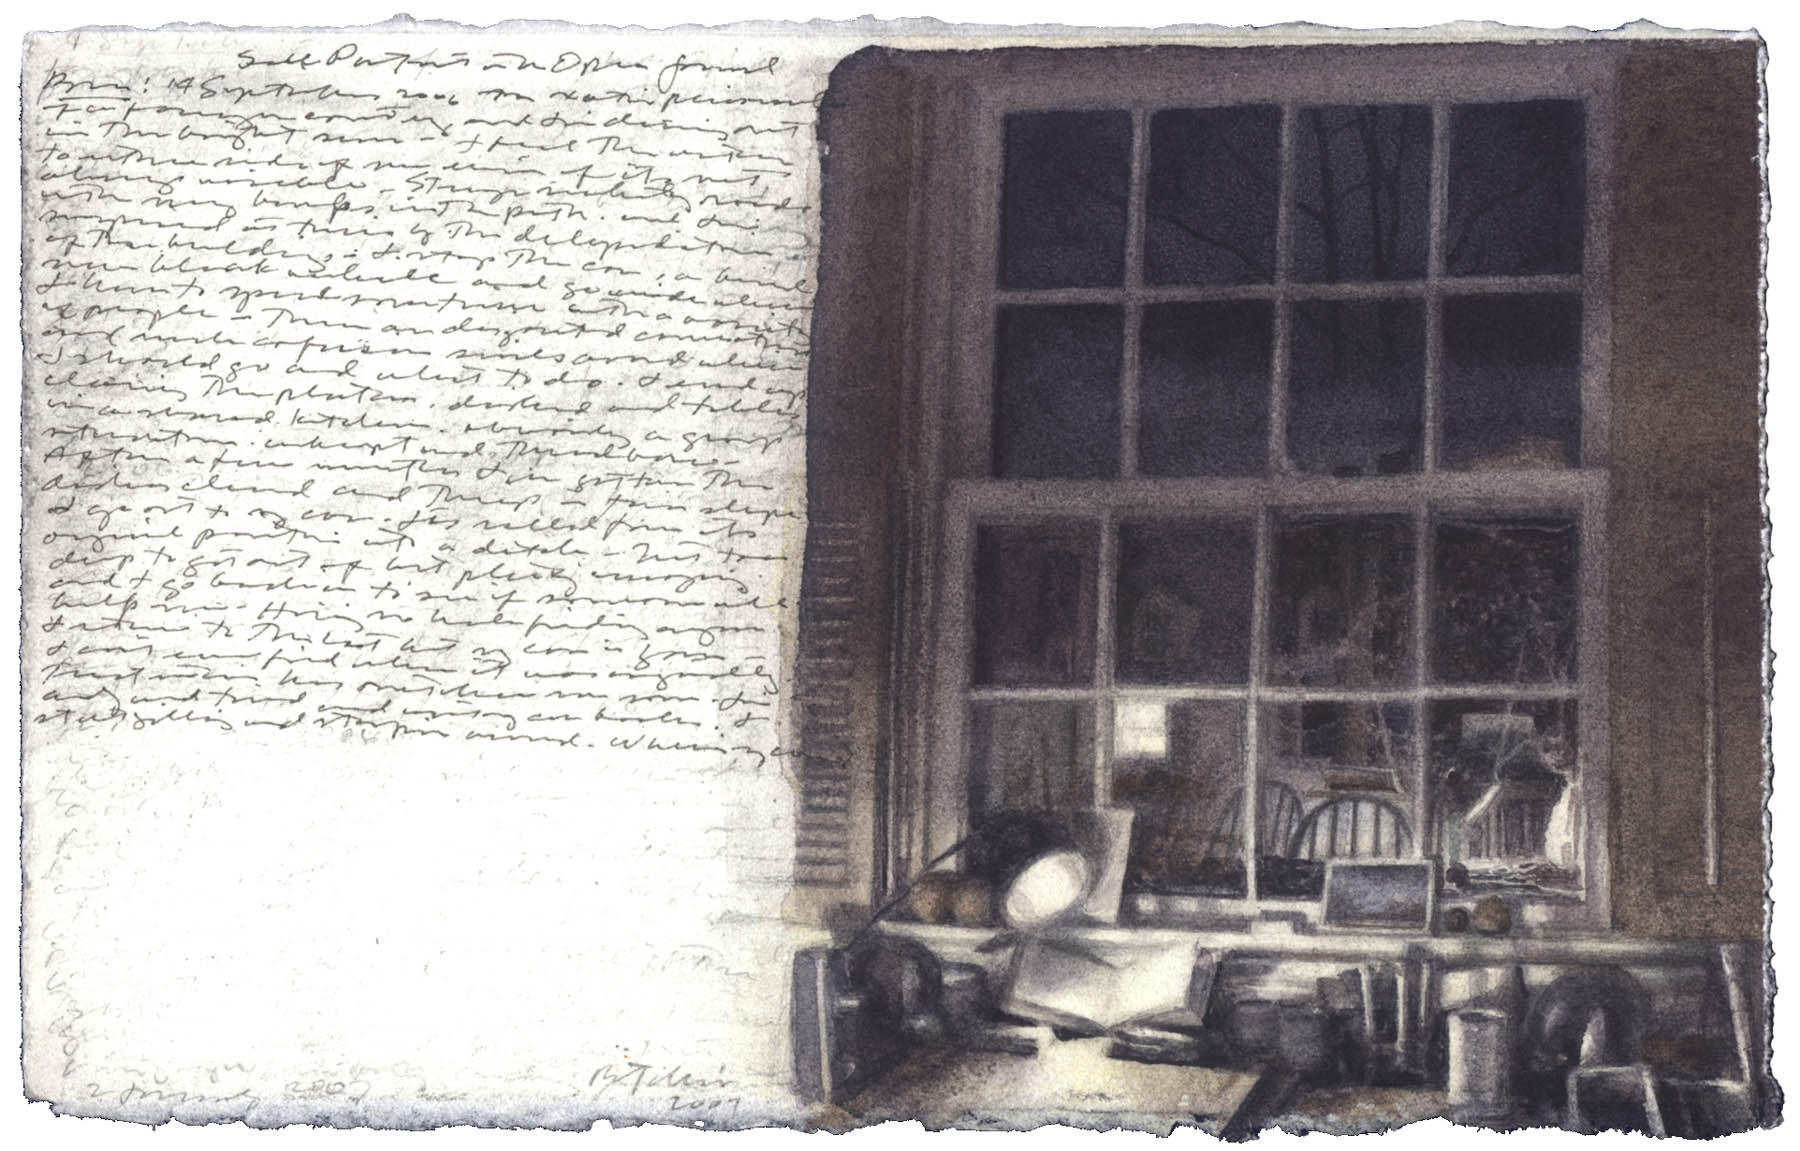 Self-Portrait with Open Journal image